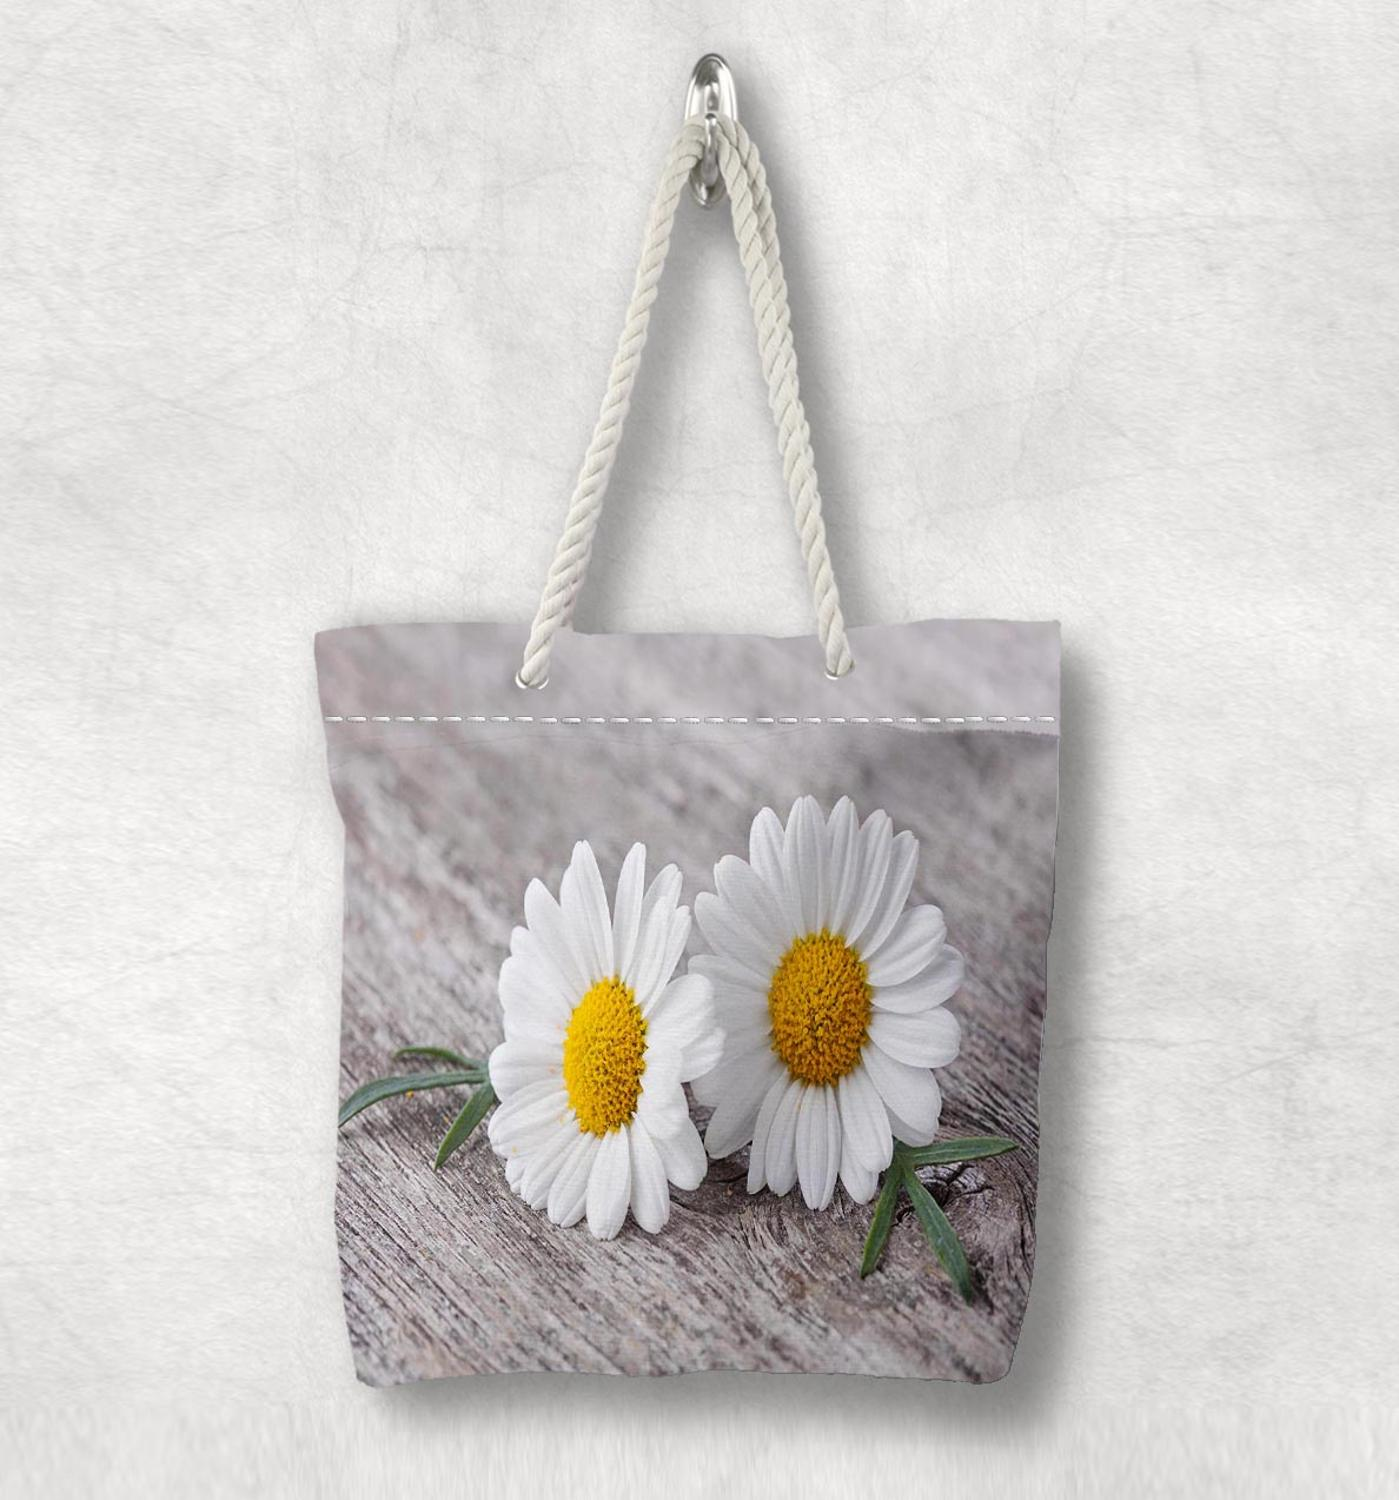 Else Gray Floor Yellow White Dasiy Flowers New Fashion White Rope Handle Canvas Bag Cotton Canvas Zippered Tote Bag Shoulder Bag